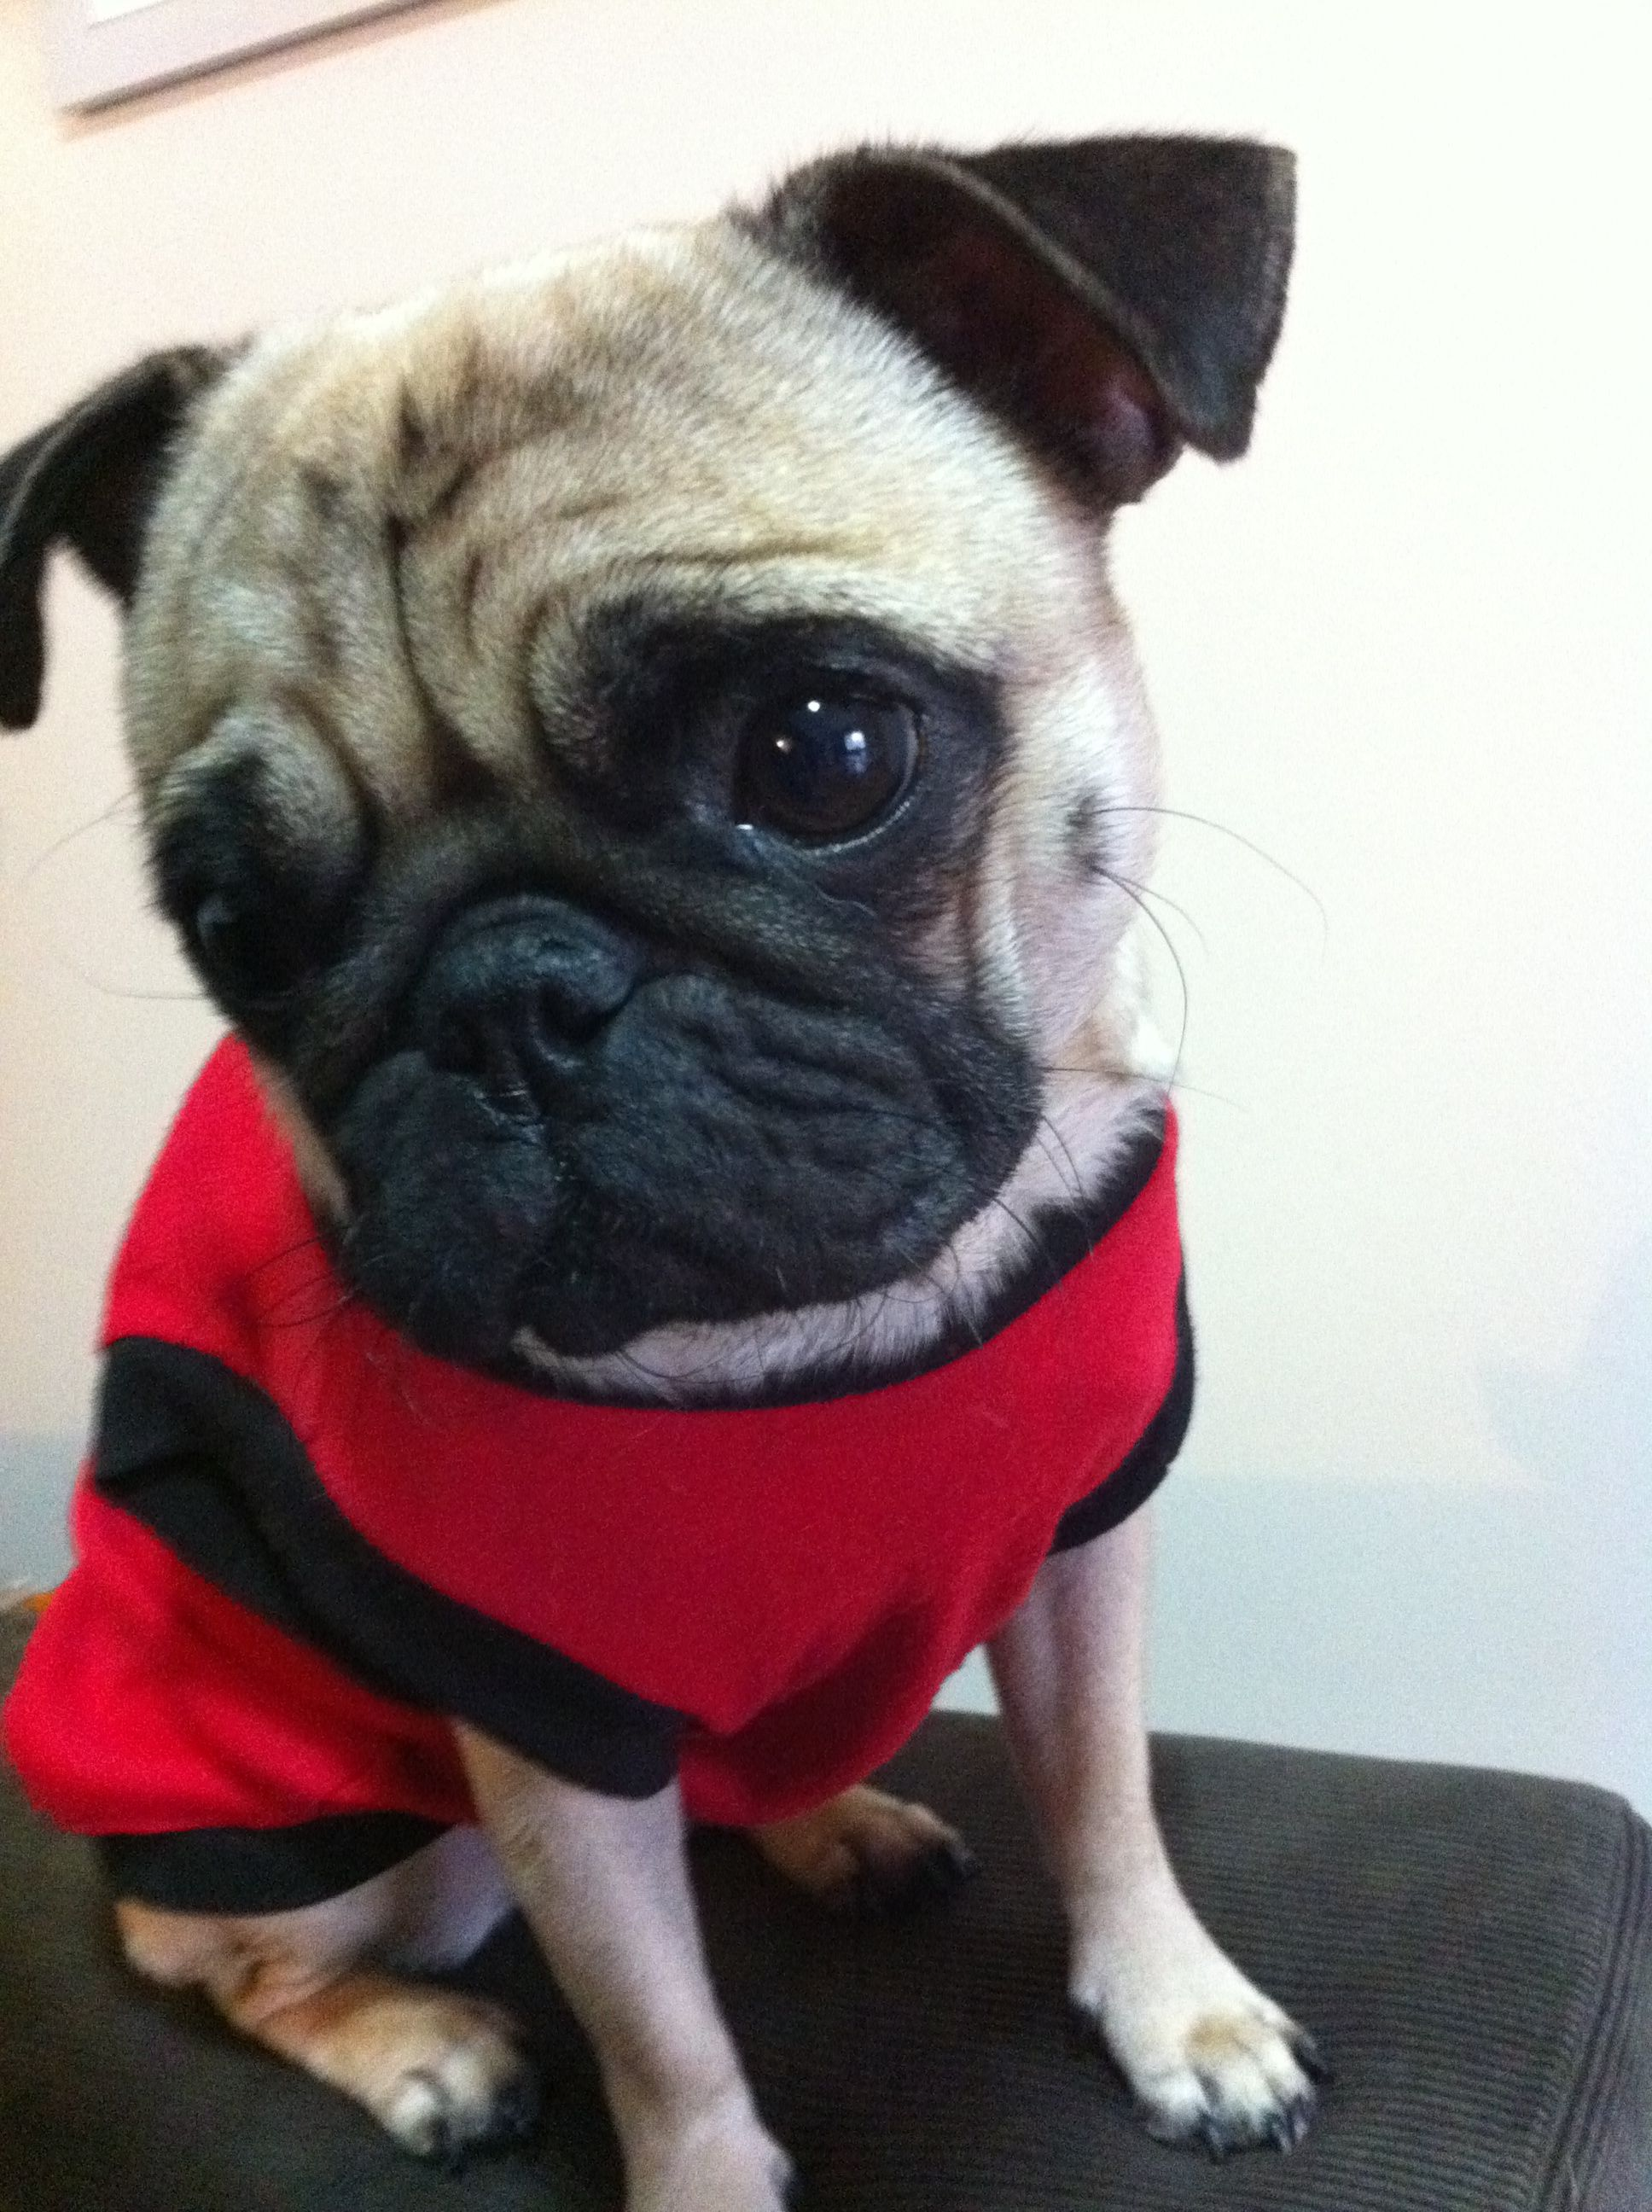 Puppy Eyes Pug To Cute Puppy Eyes Pugs Puppies